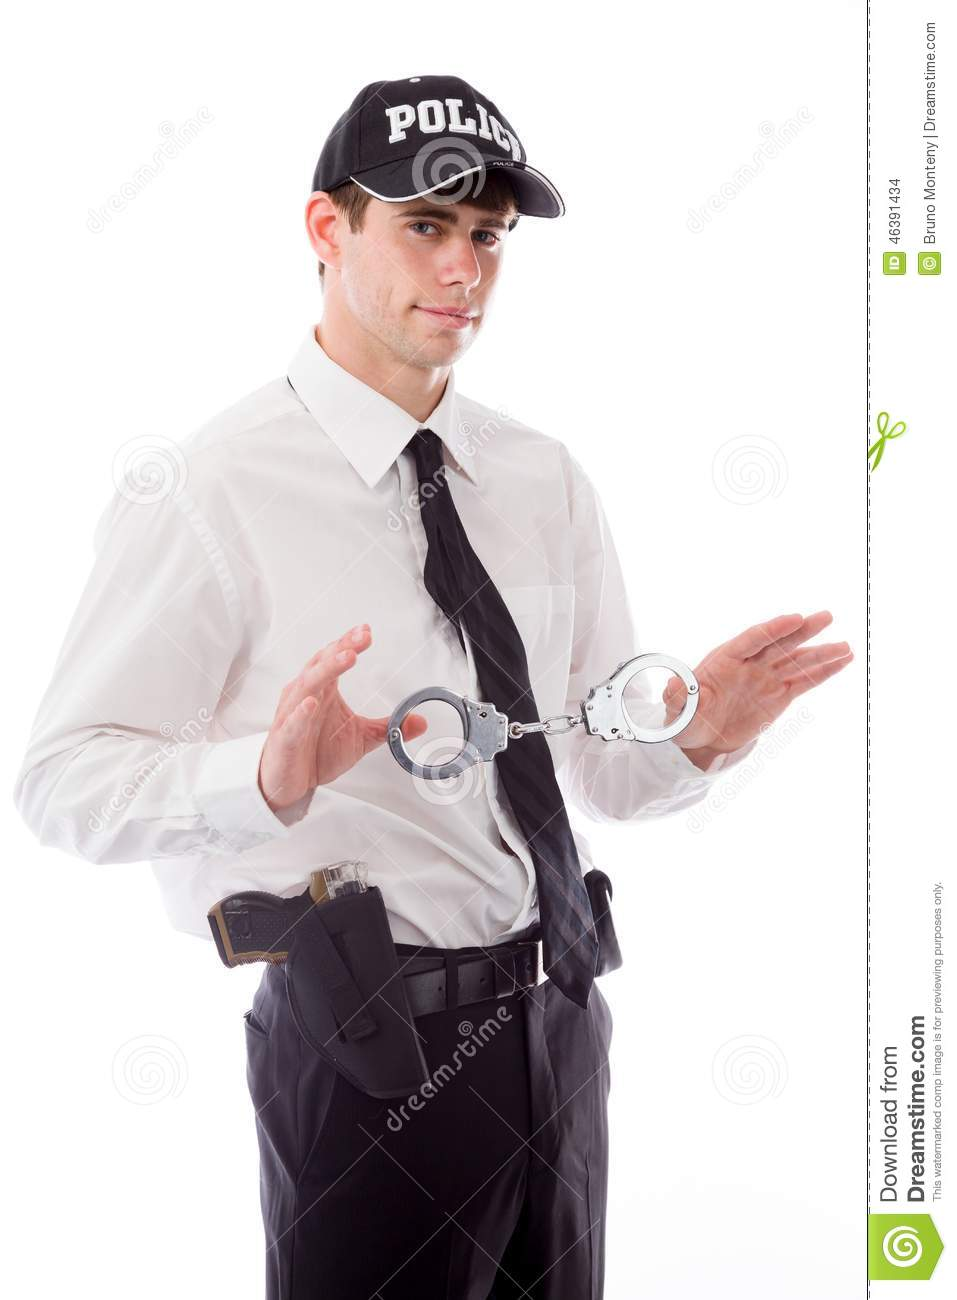 porn with handcuffs